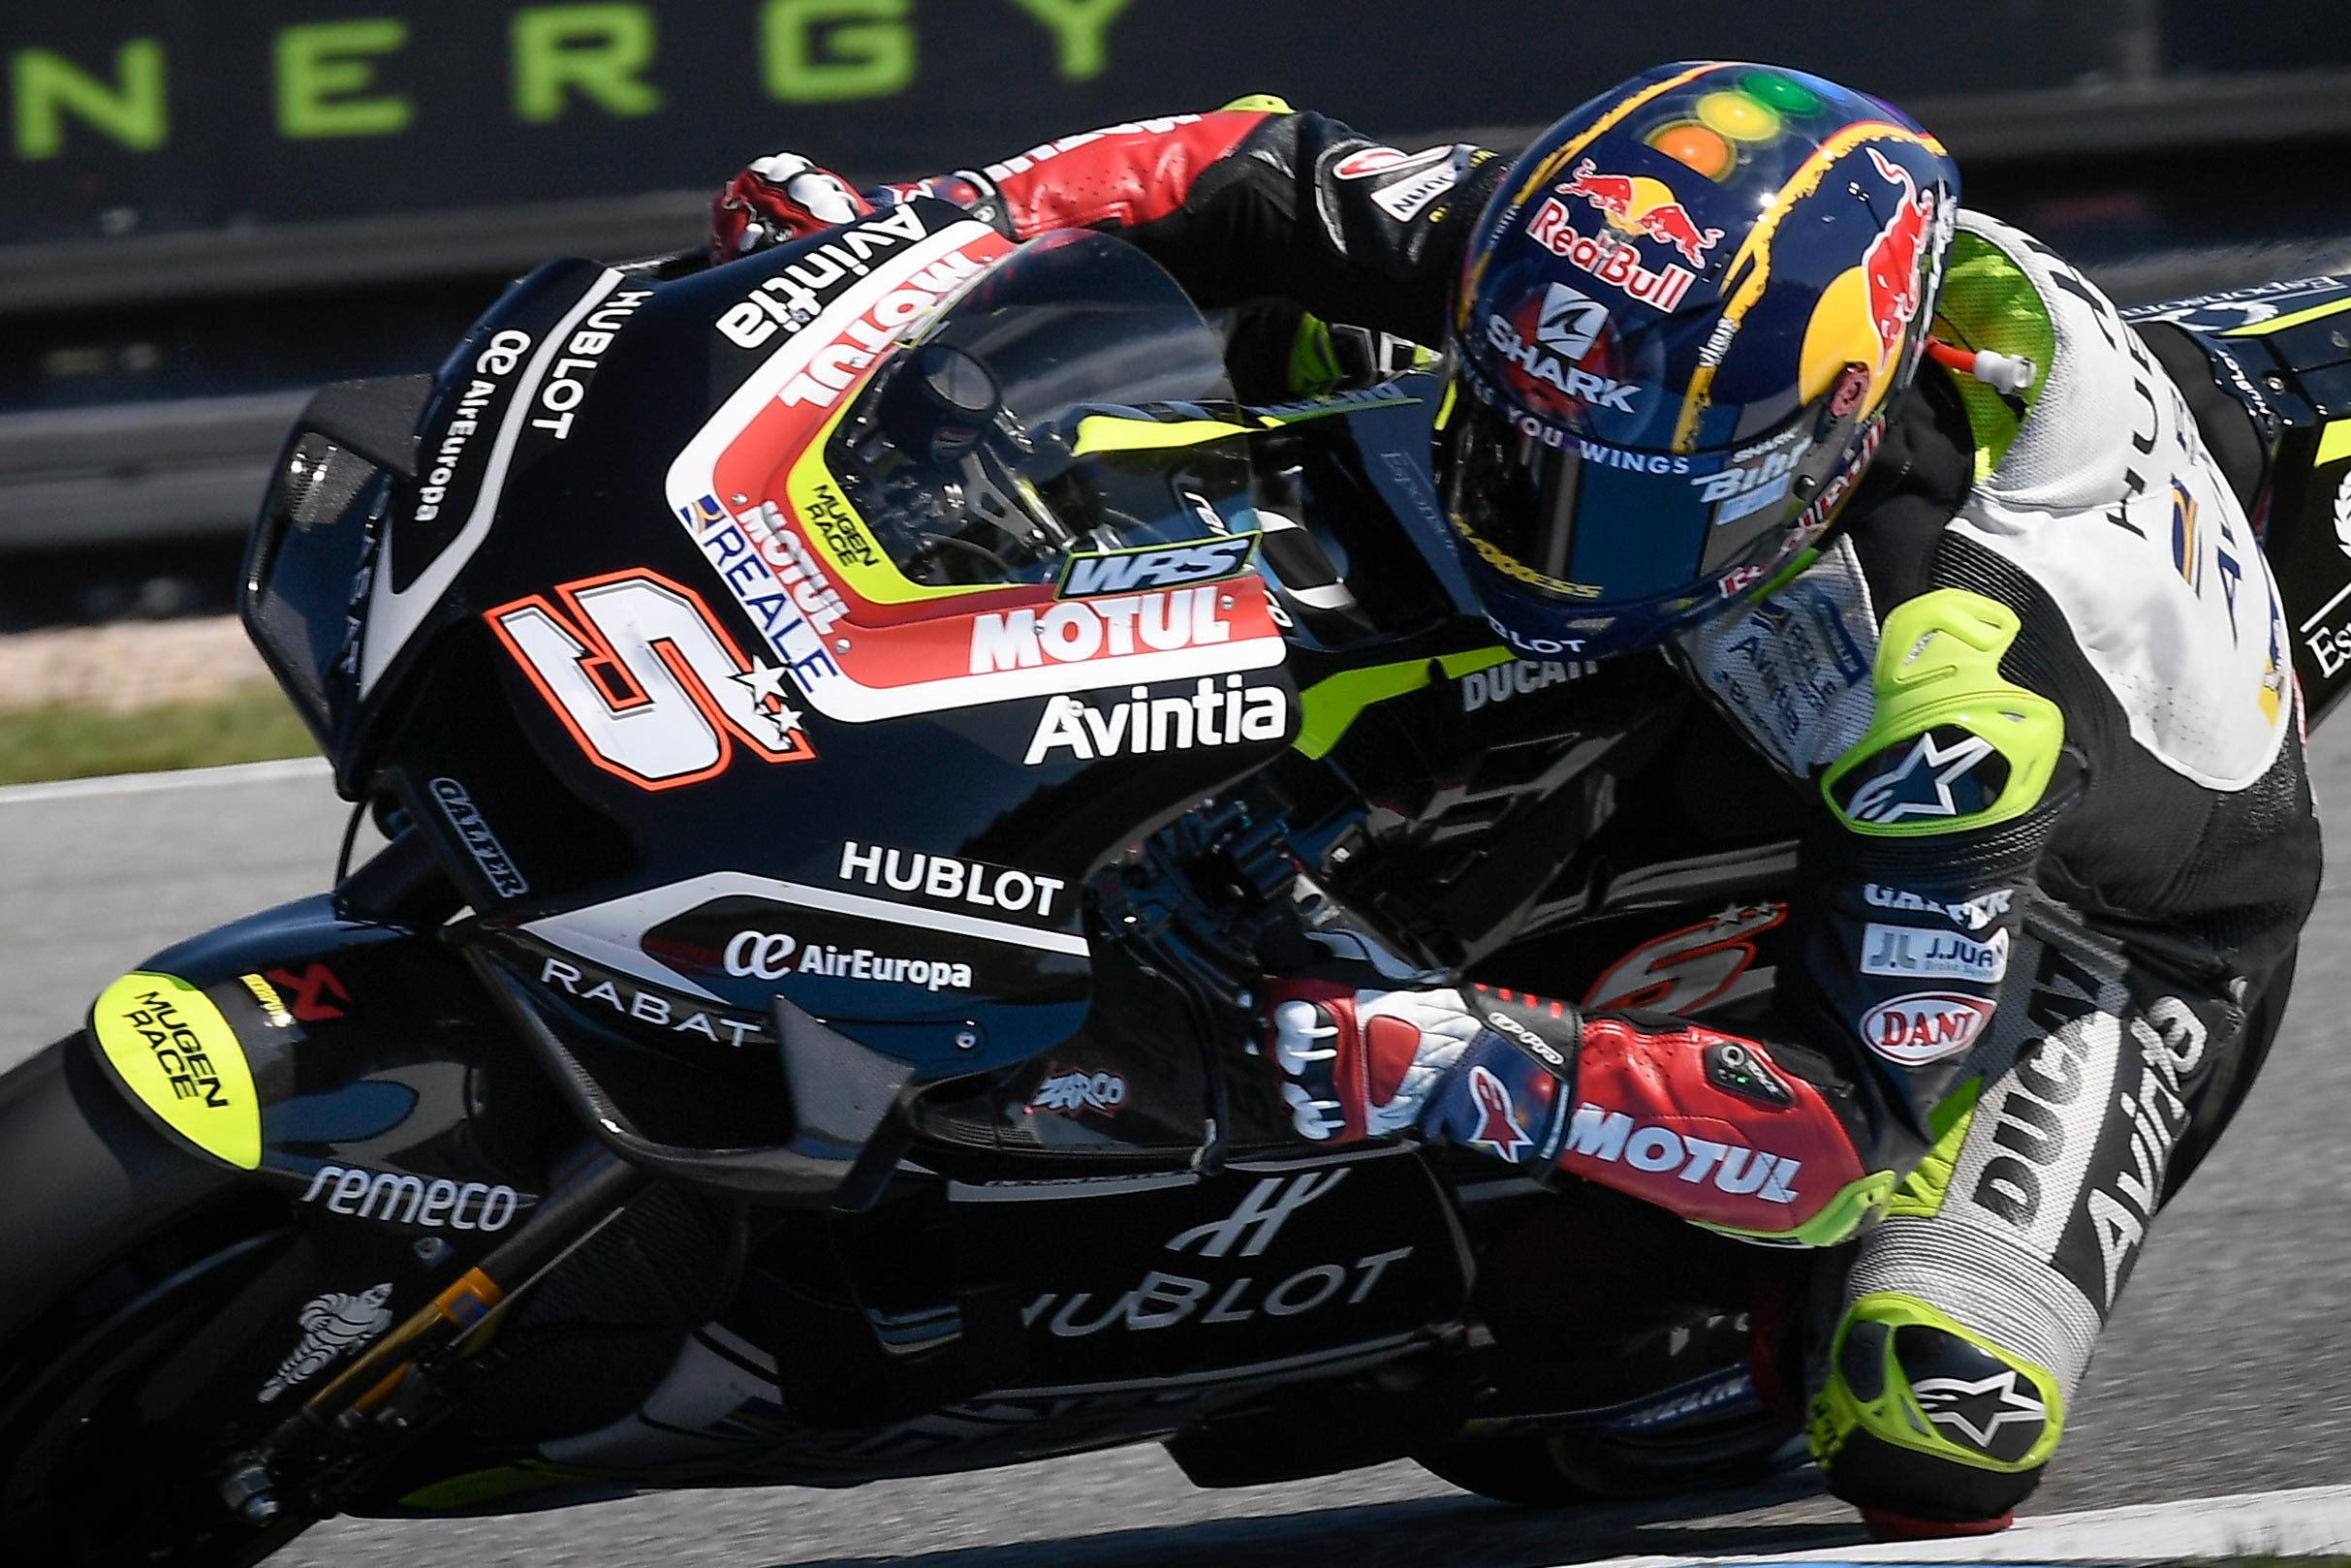 Saturday Motogp Summary At The Czech Gp Why Old Is Better Than New Sometimes Asphalt Rubber